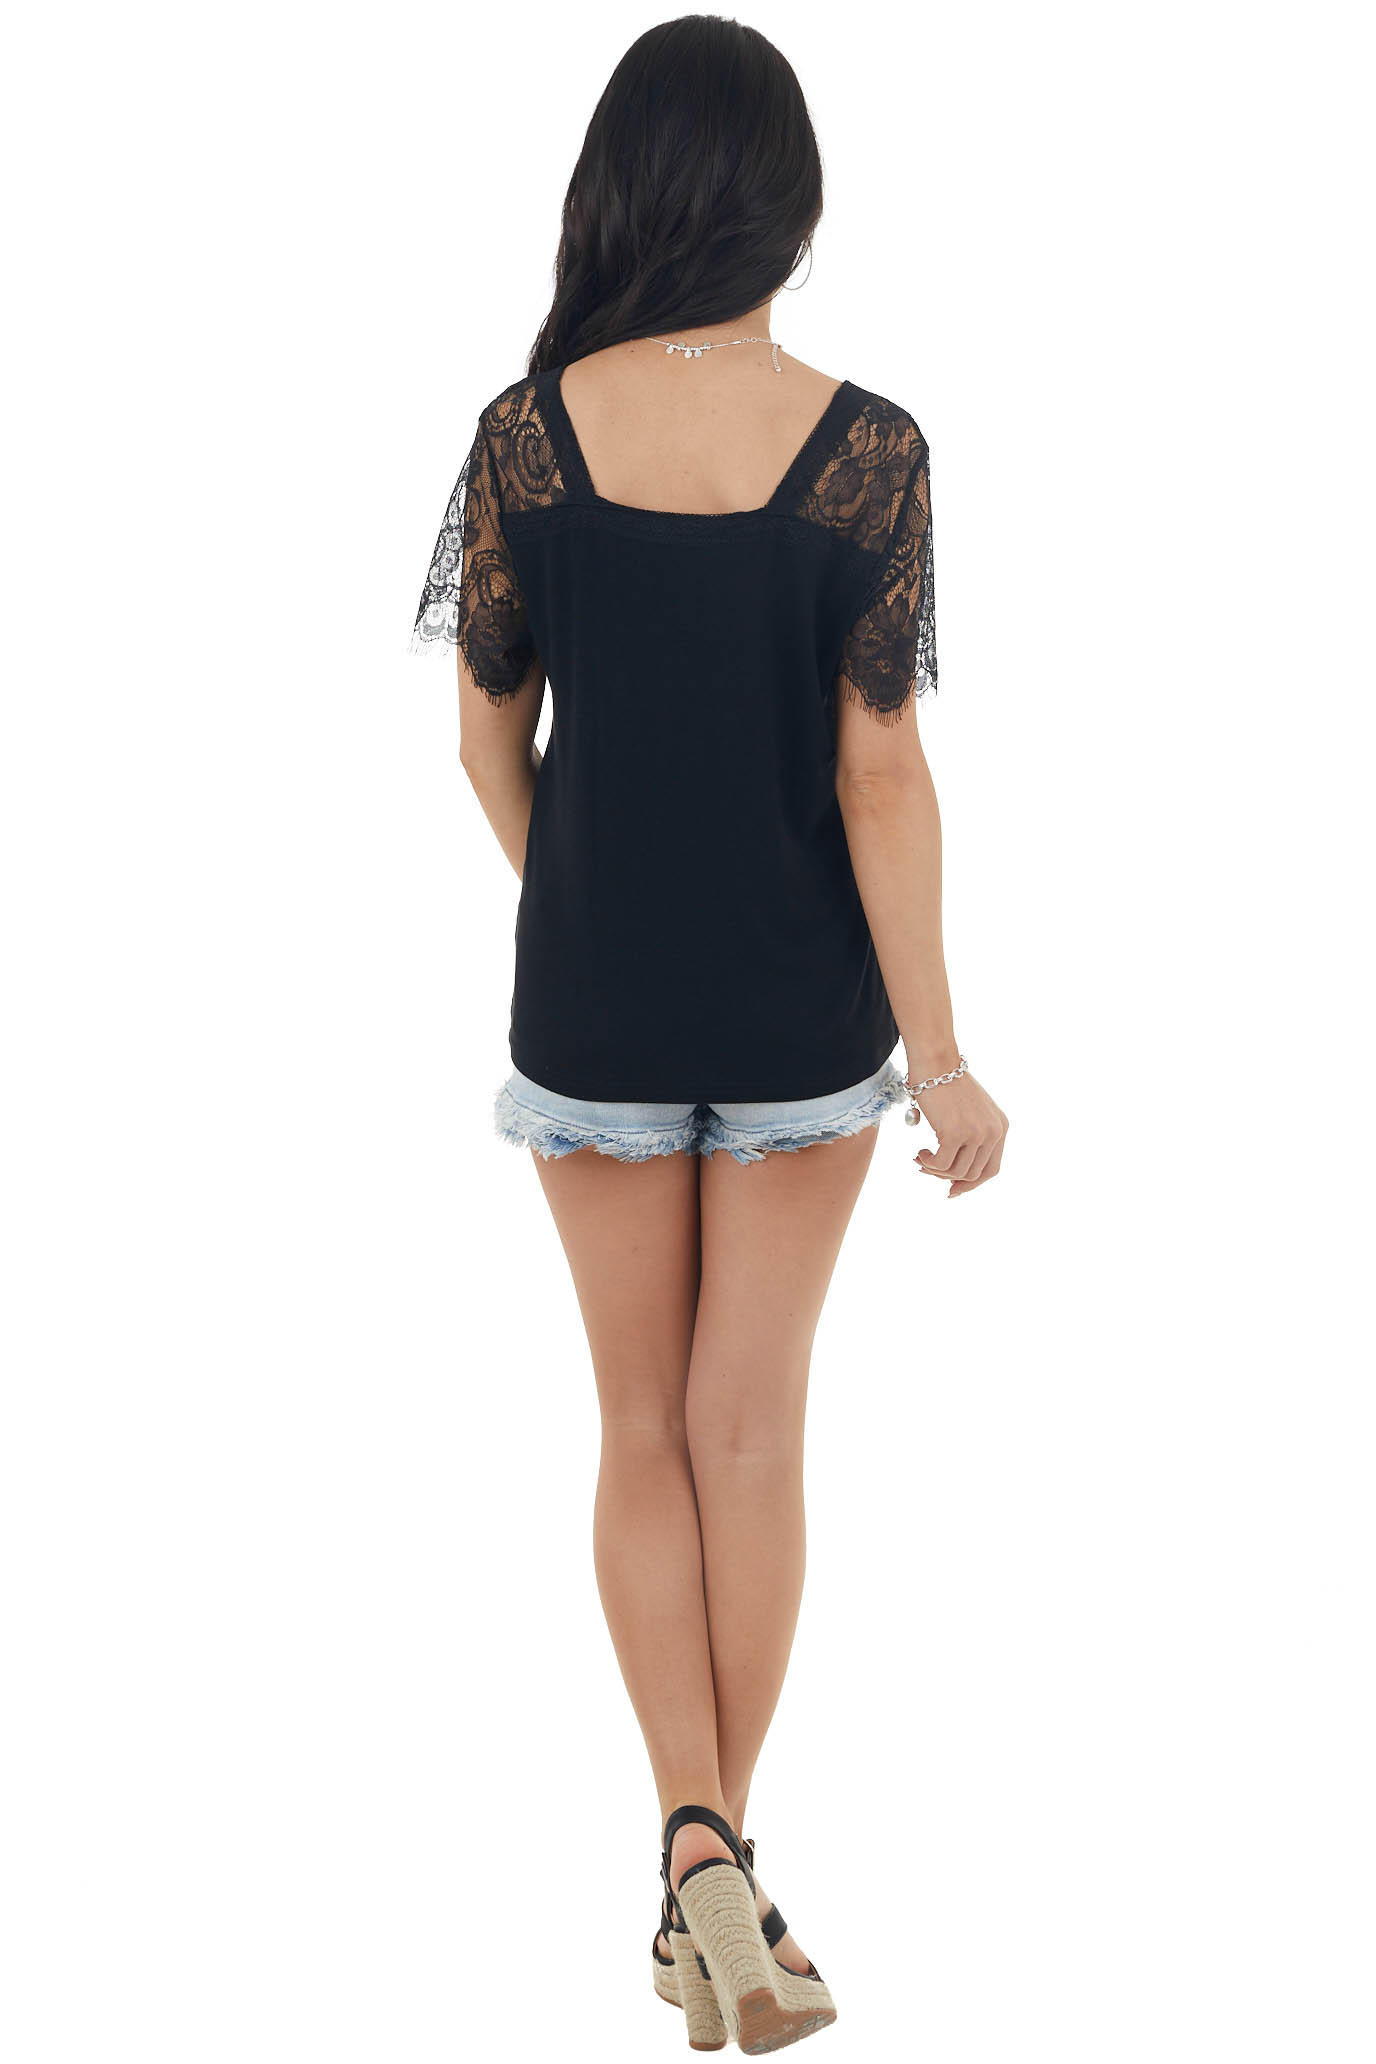 Black Short Sleeve Knit Top with Lace Details